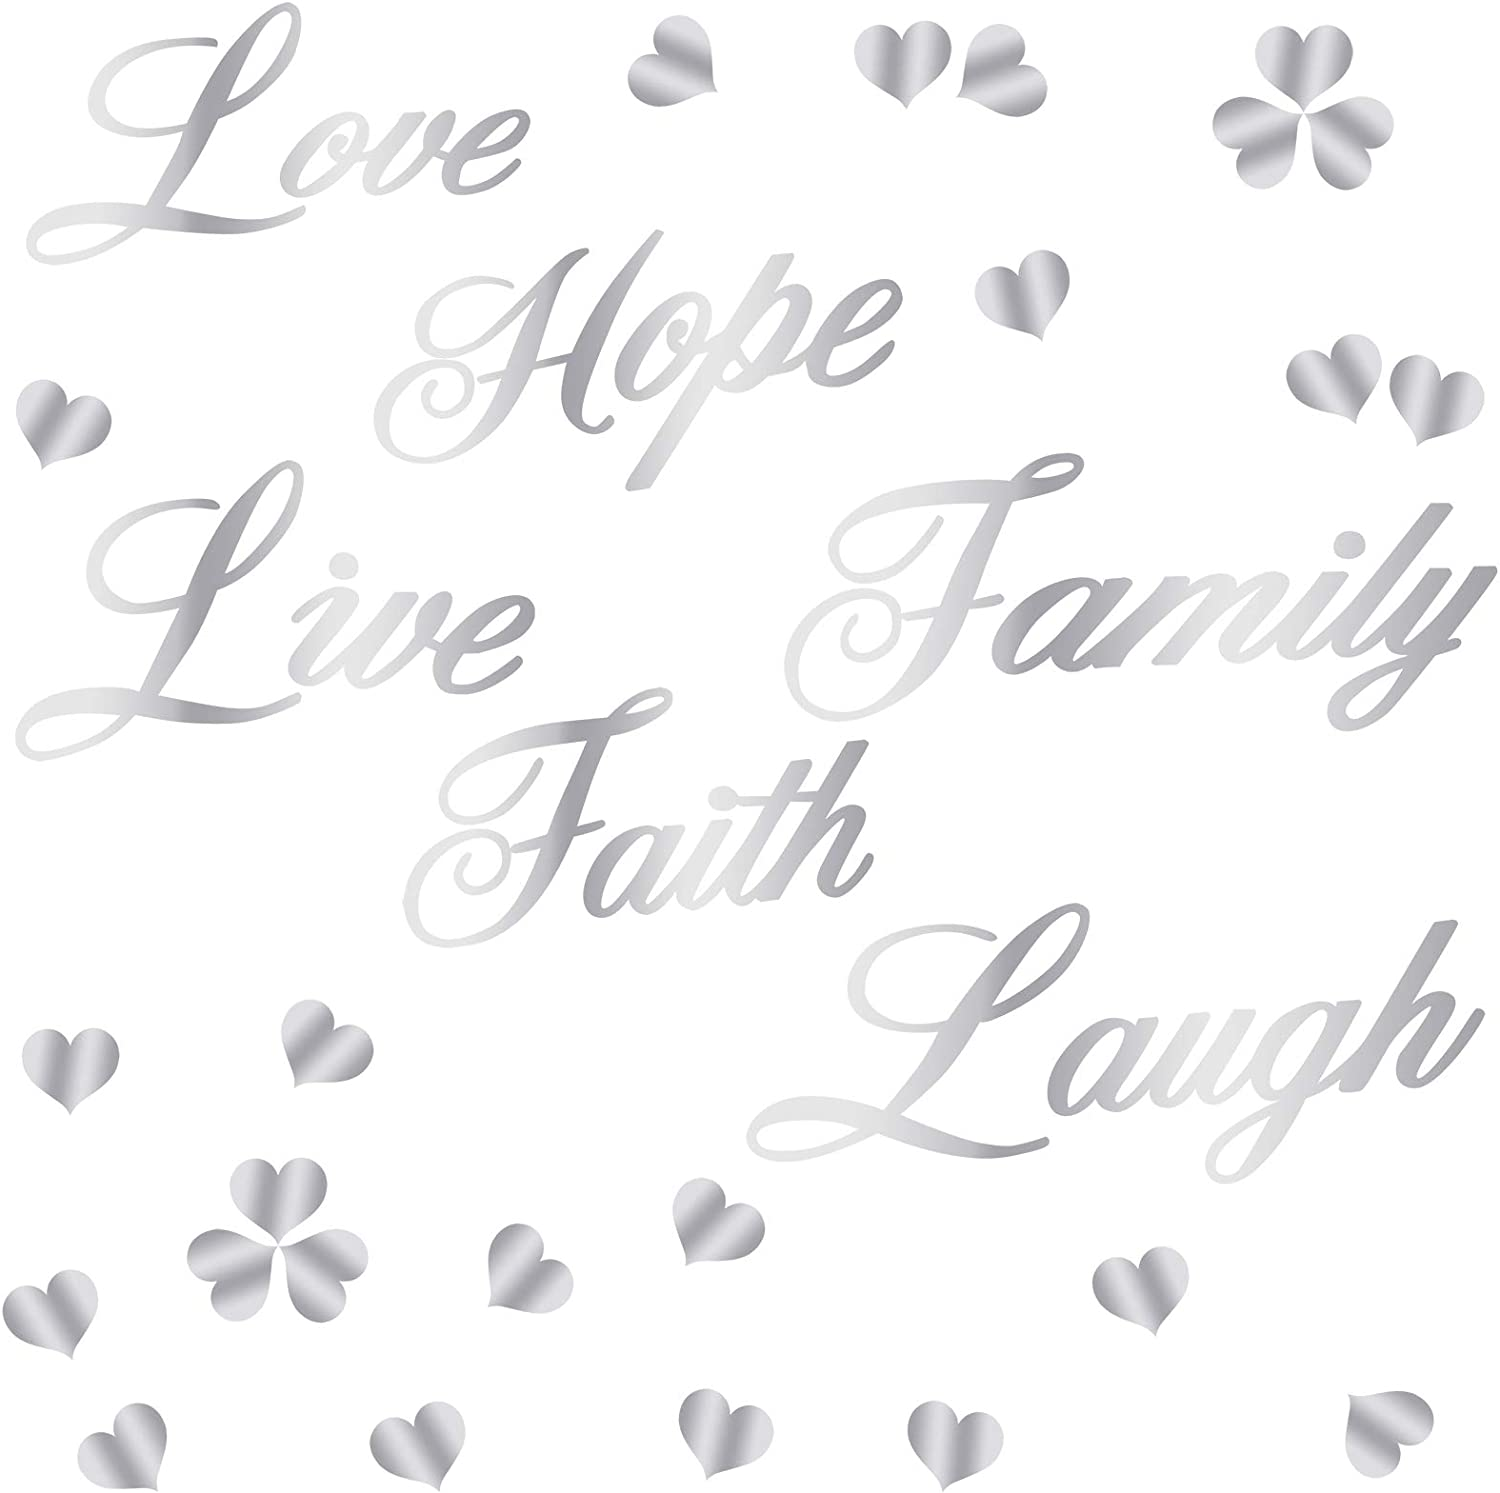 Sntieecr 23 Pack 3D Acrylic Mirror Wall Stickers Decal Faith Live Laugh Hope Love Family Silver Mirror Wall Stickers Hearts Shaped Wall Decal for Home Living Room Bedroom Wall Decoration